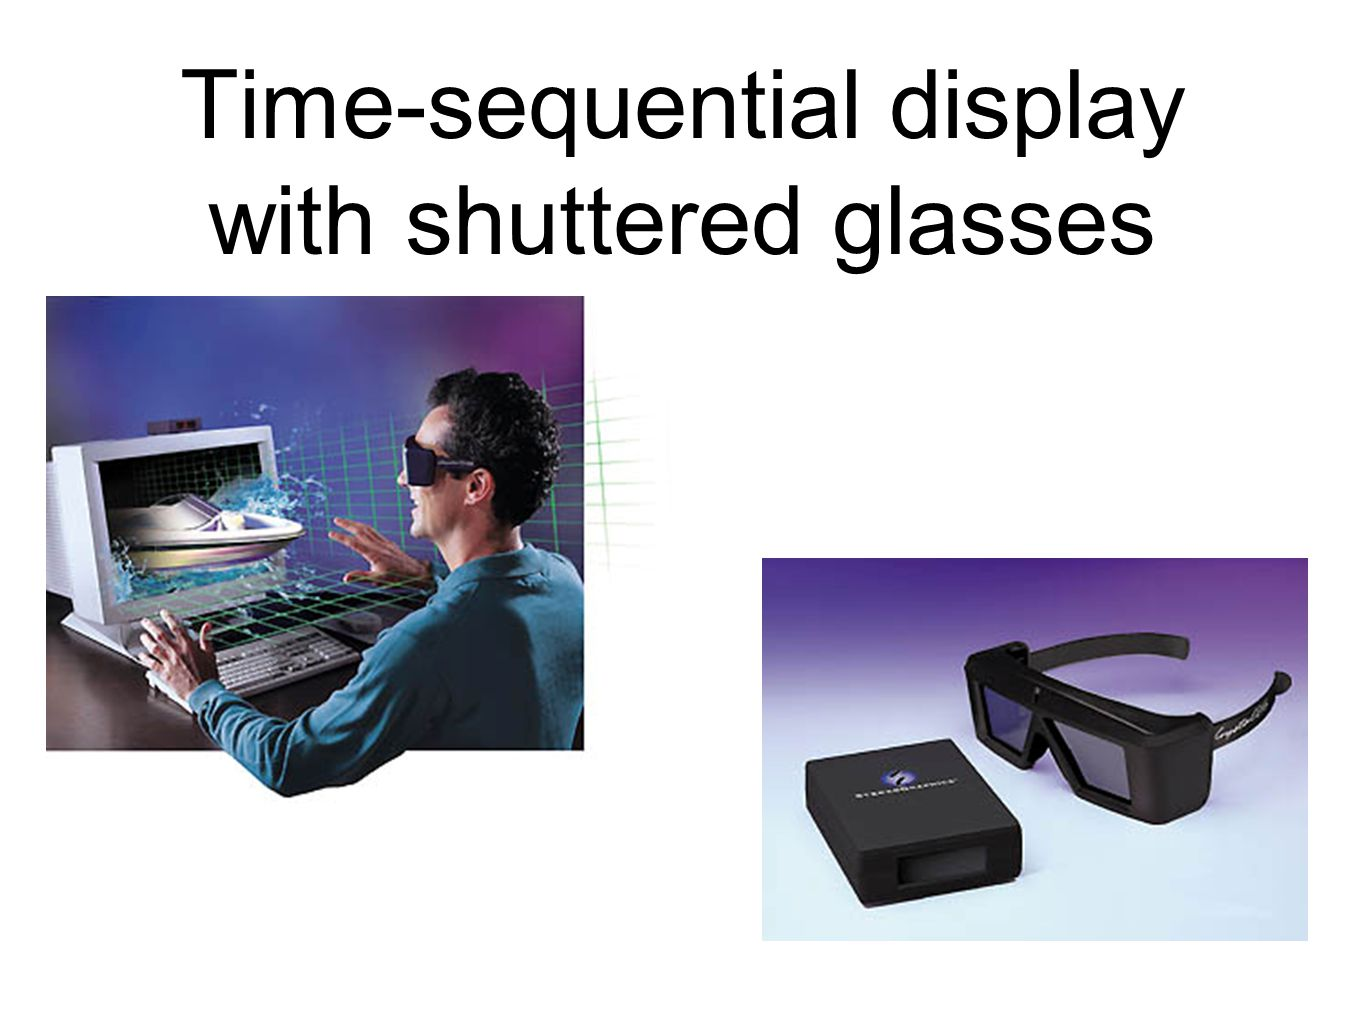 Time-sequential display with shuttered glasses